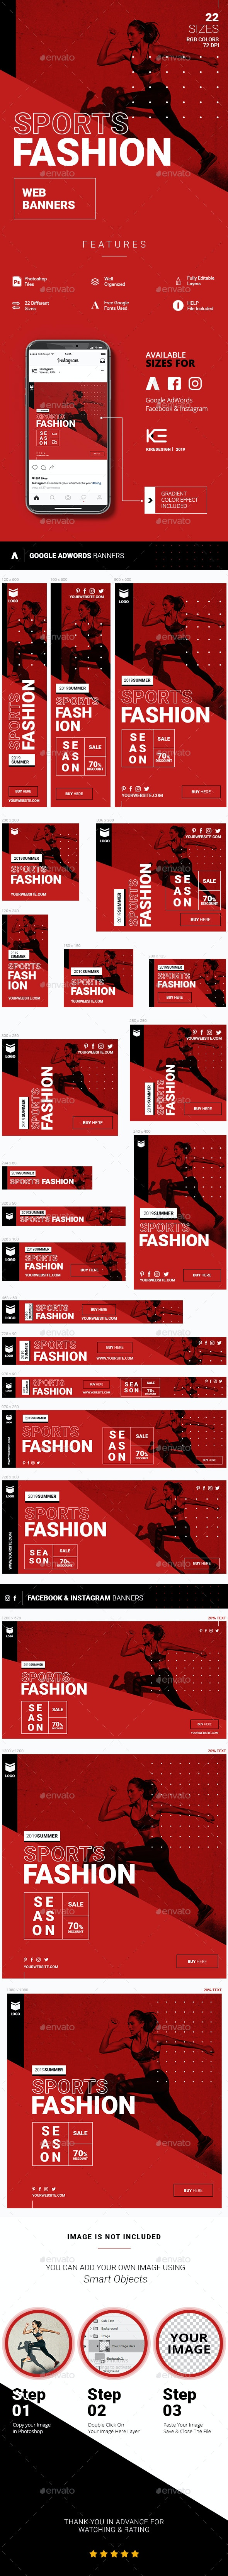 Sports Fashion Web Banners - Banners & Ads Web Elements